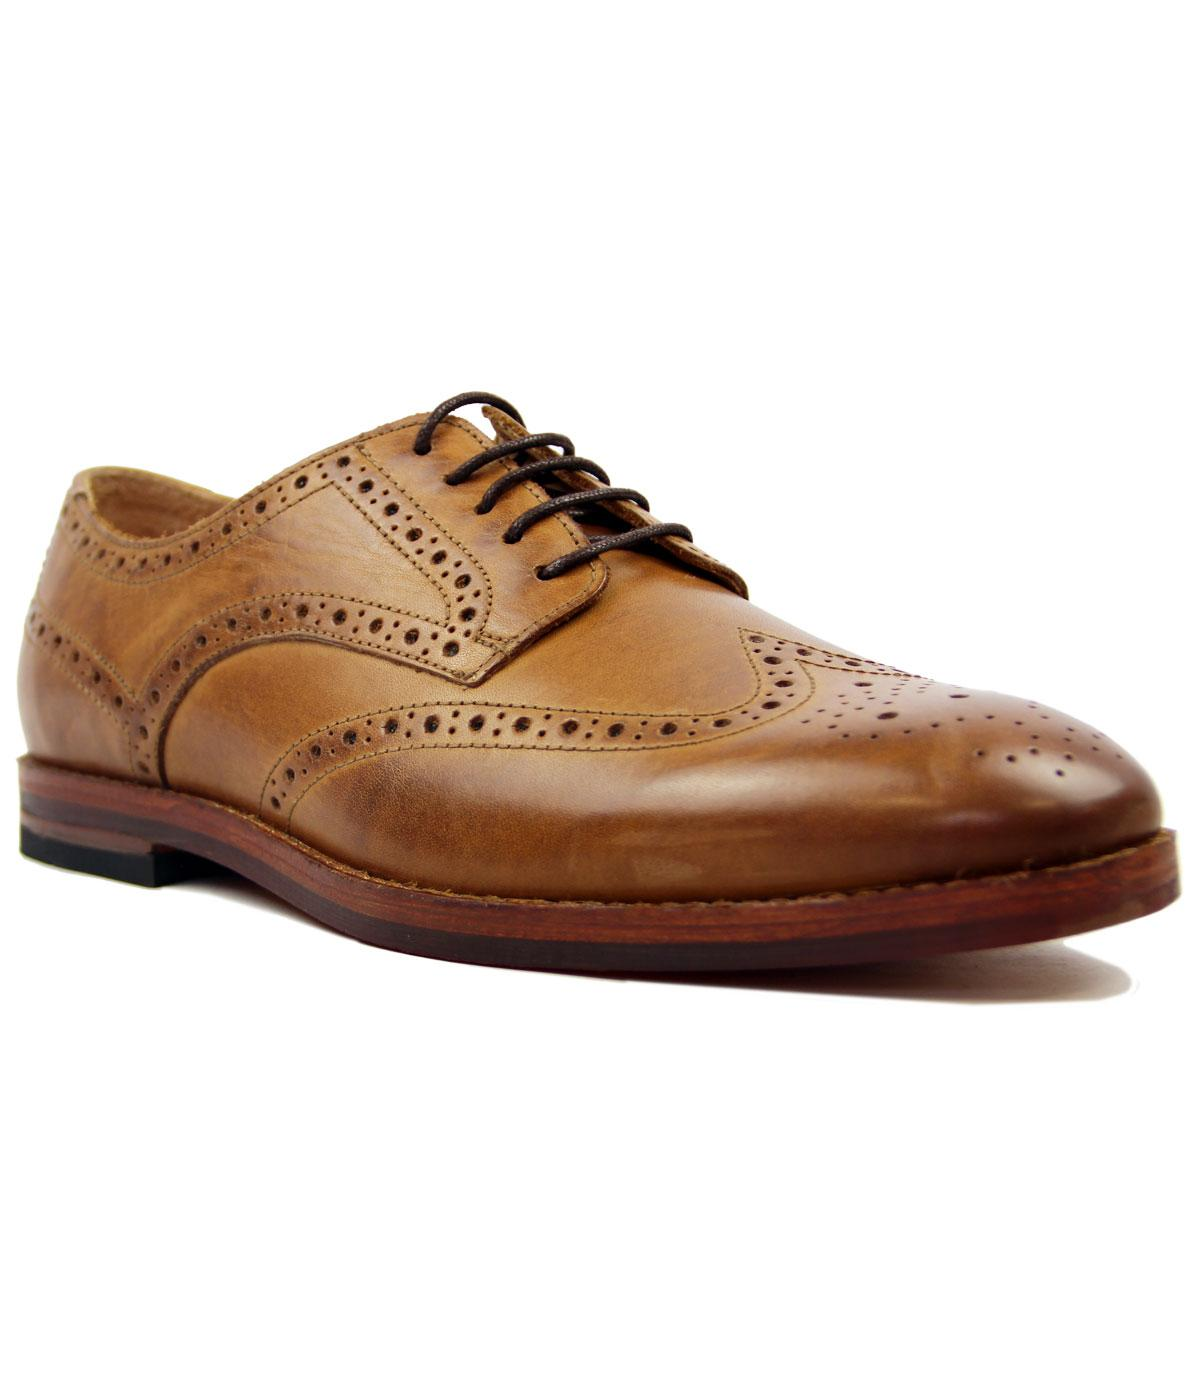 Talbot H by HUDSON Mod Calf Tan Brogues